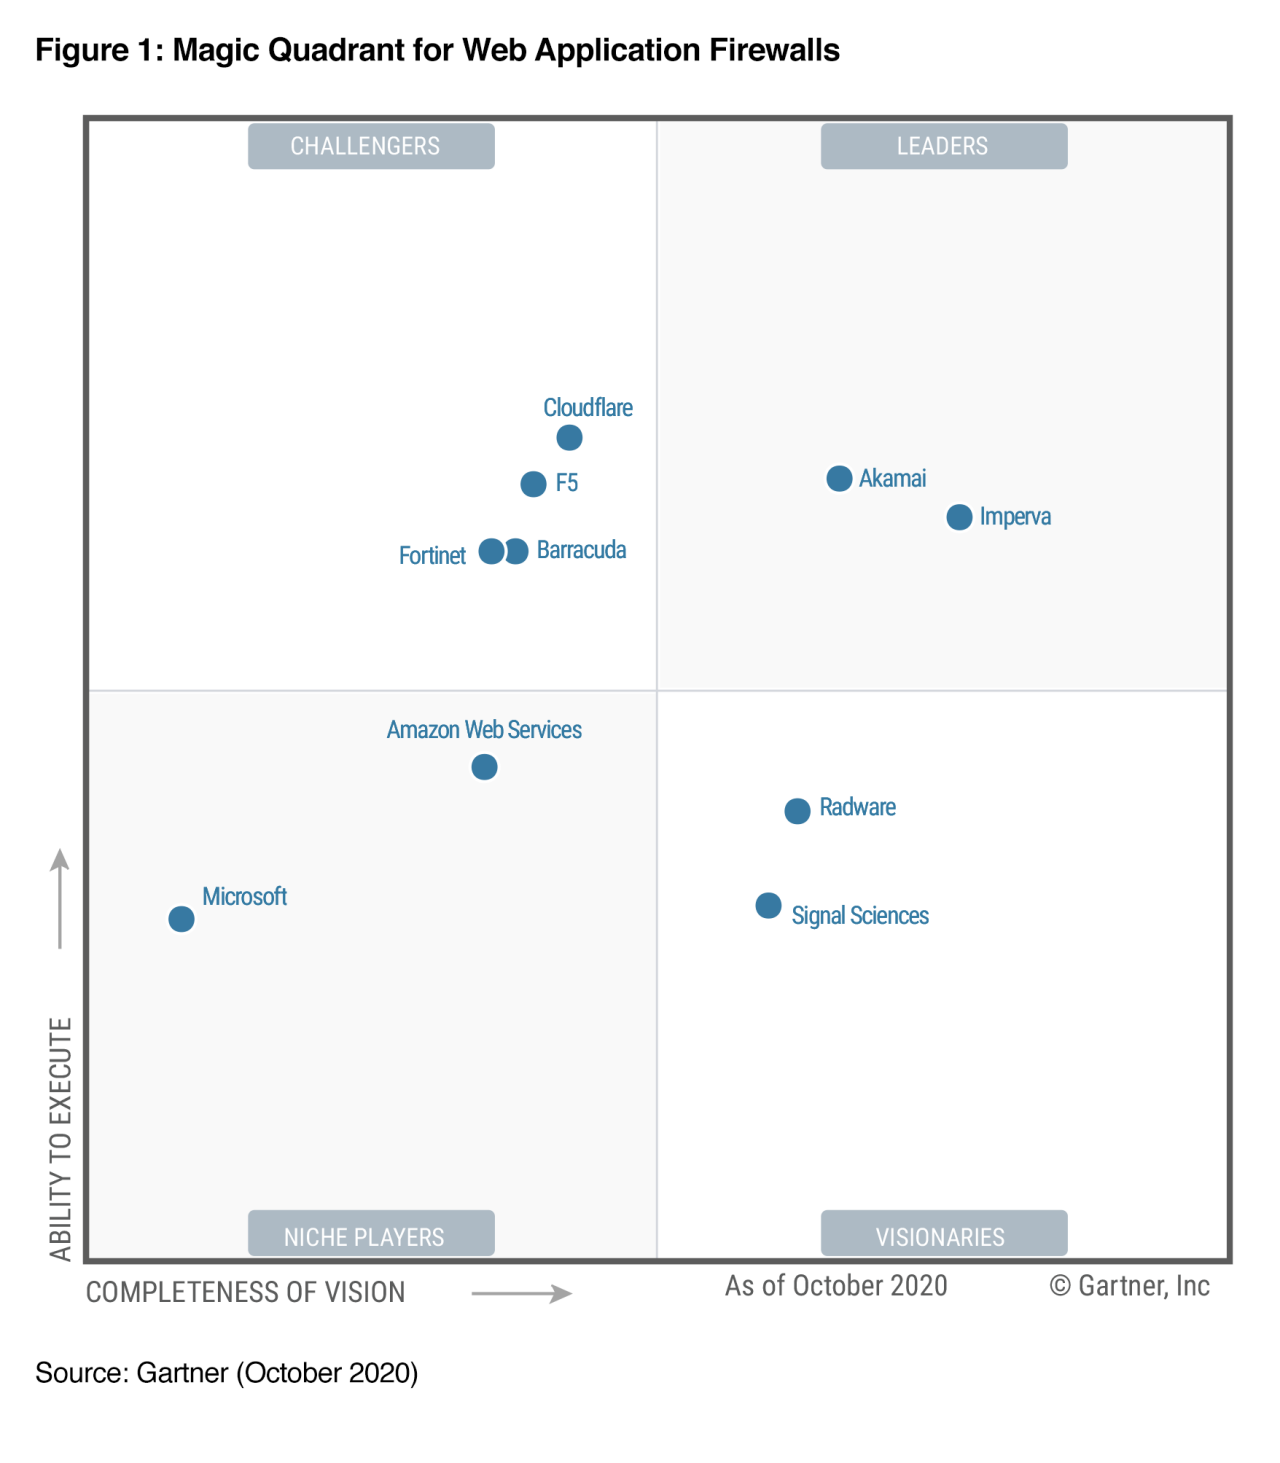 Gartner Magic Quadrant for Web Application Firewalls